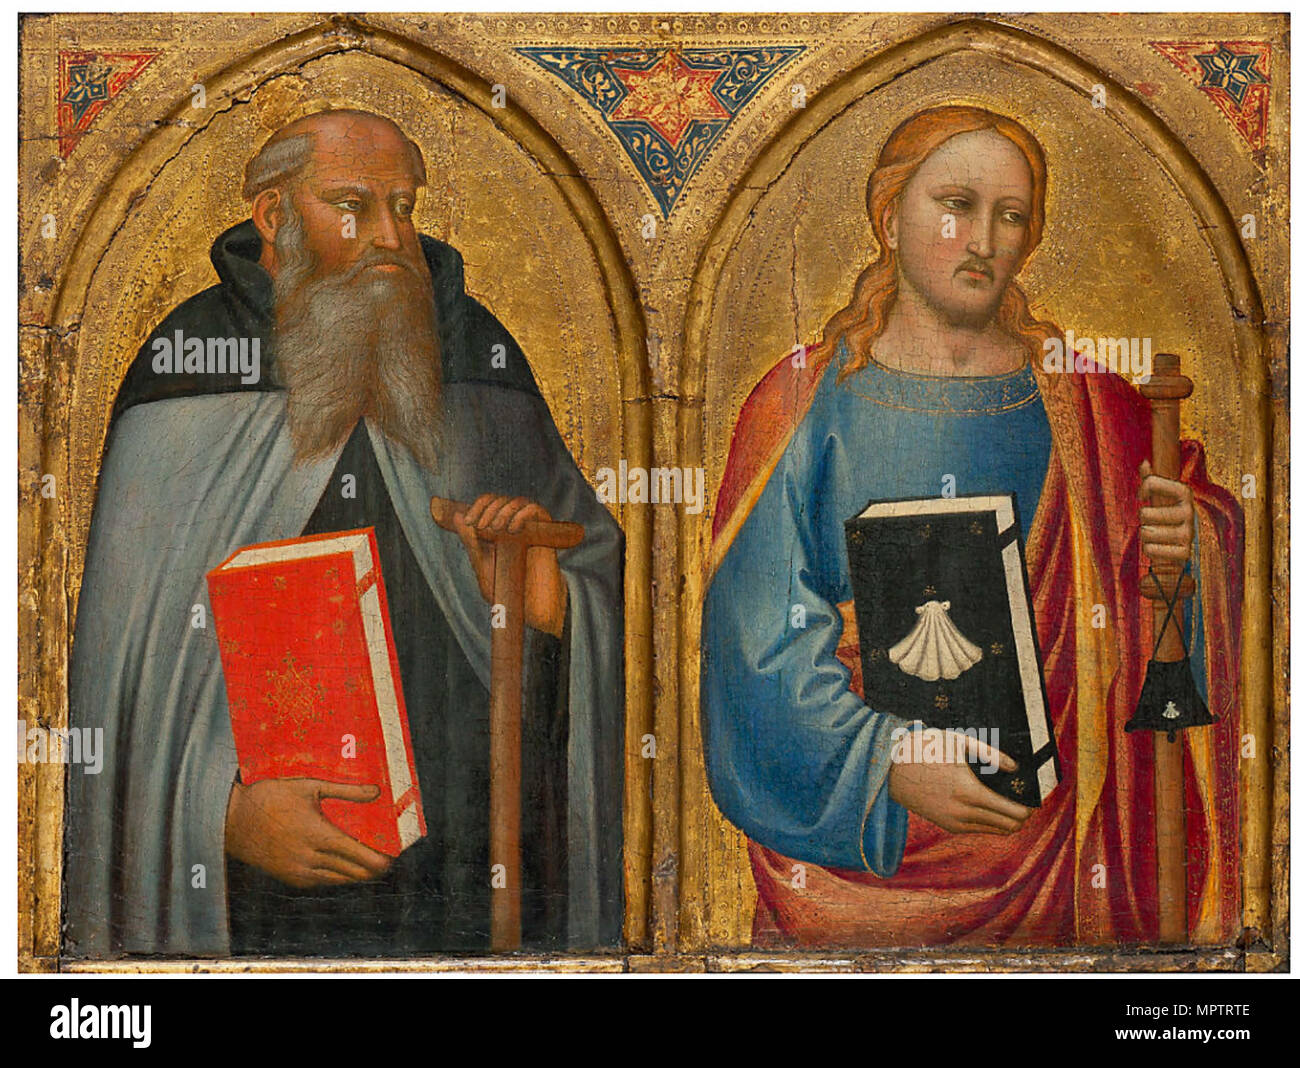 The Saints Anthony and James the Great. - Stock Image